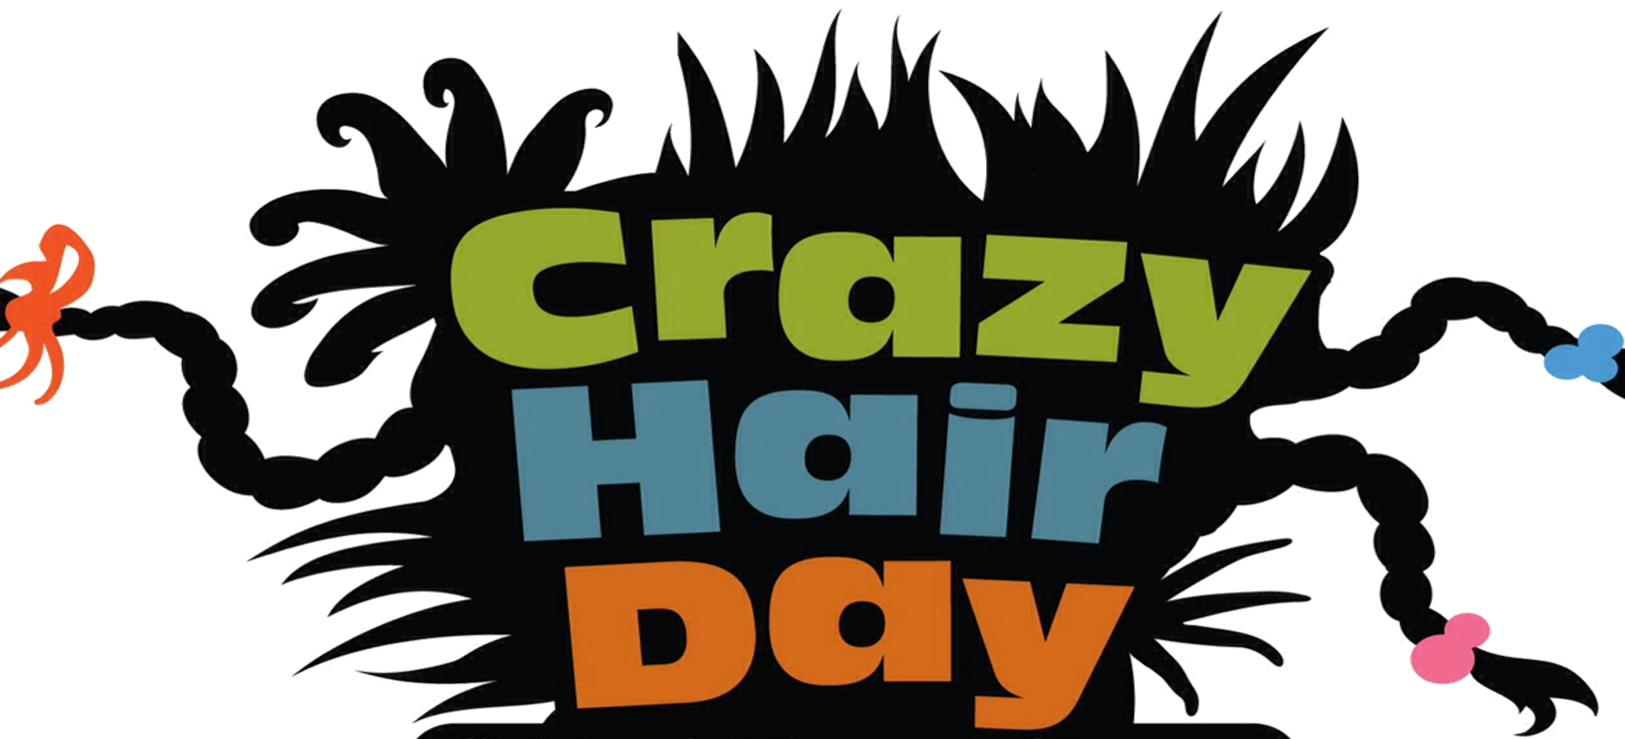 Wacky hair day clipart picture black and white stock Crazy Hair Clipart   Free download best Crazy Hair Clipart ... picture black and white stock